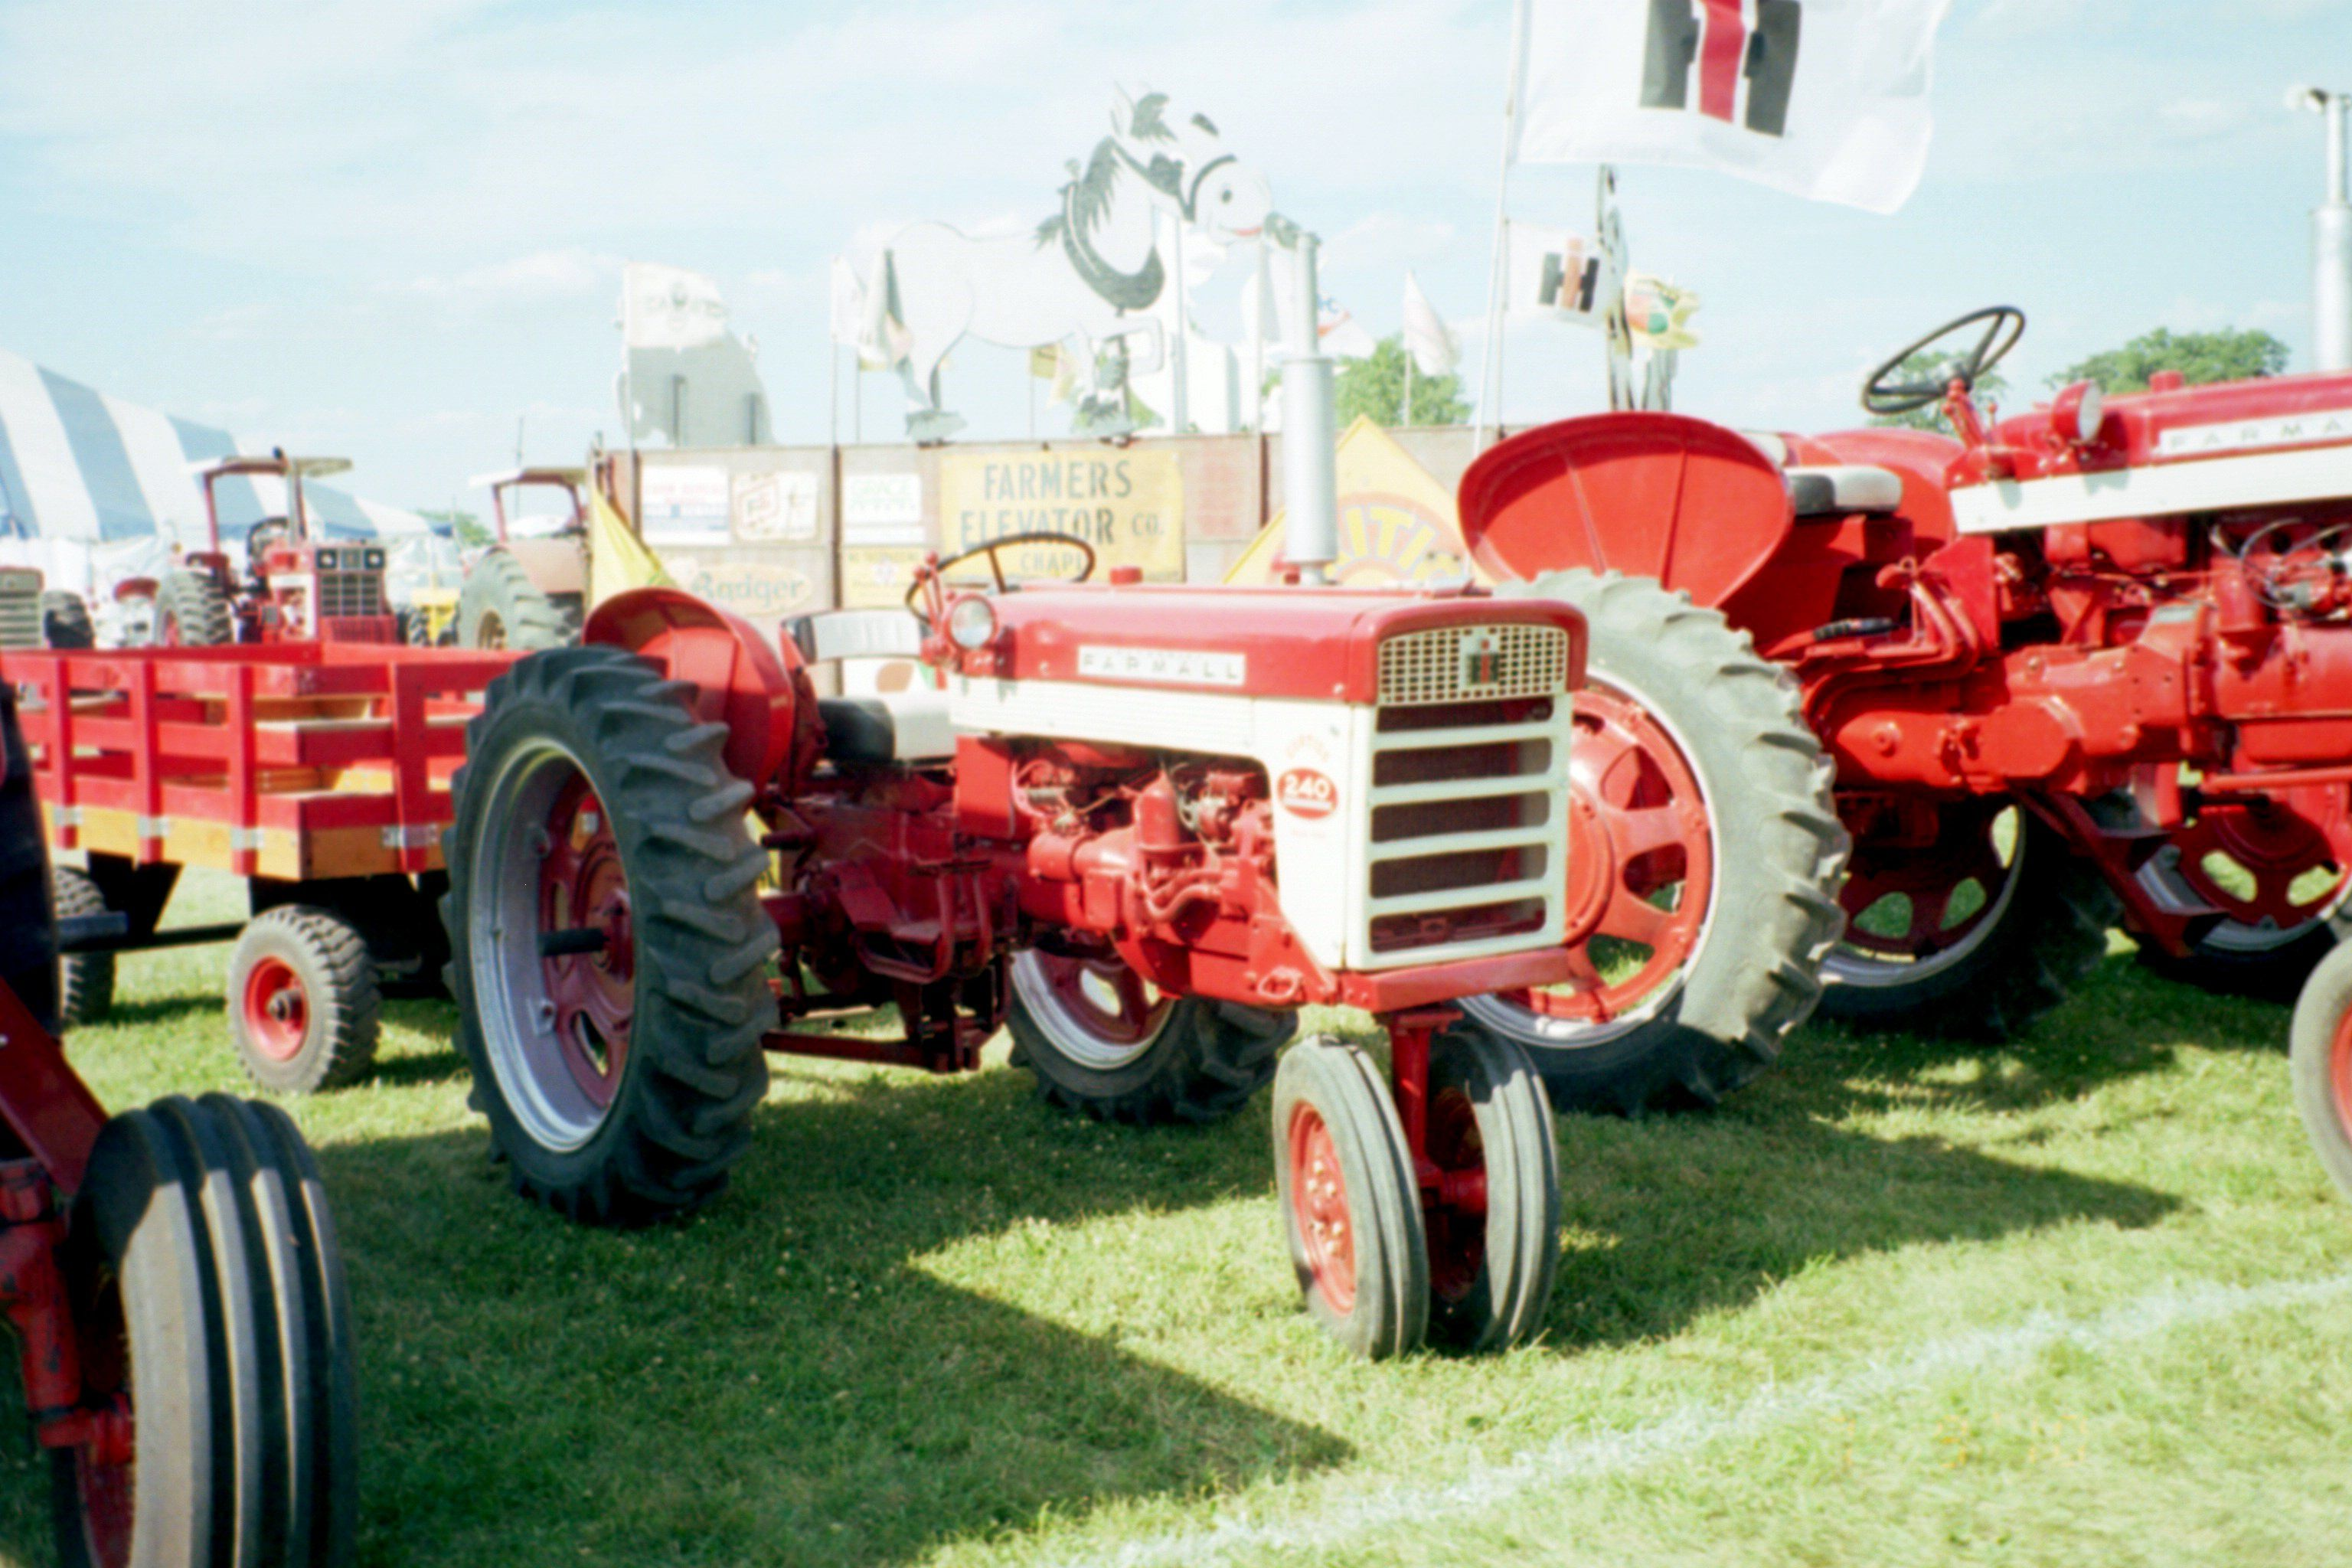 farmall 460 electrical system, john deere farmall 240 tractor | ih  equipment-my pictures | tractors, red